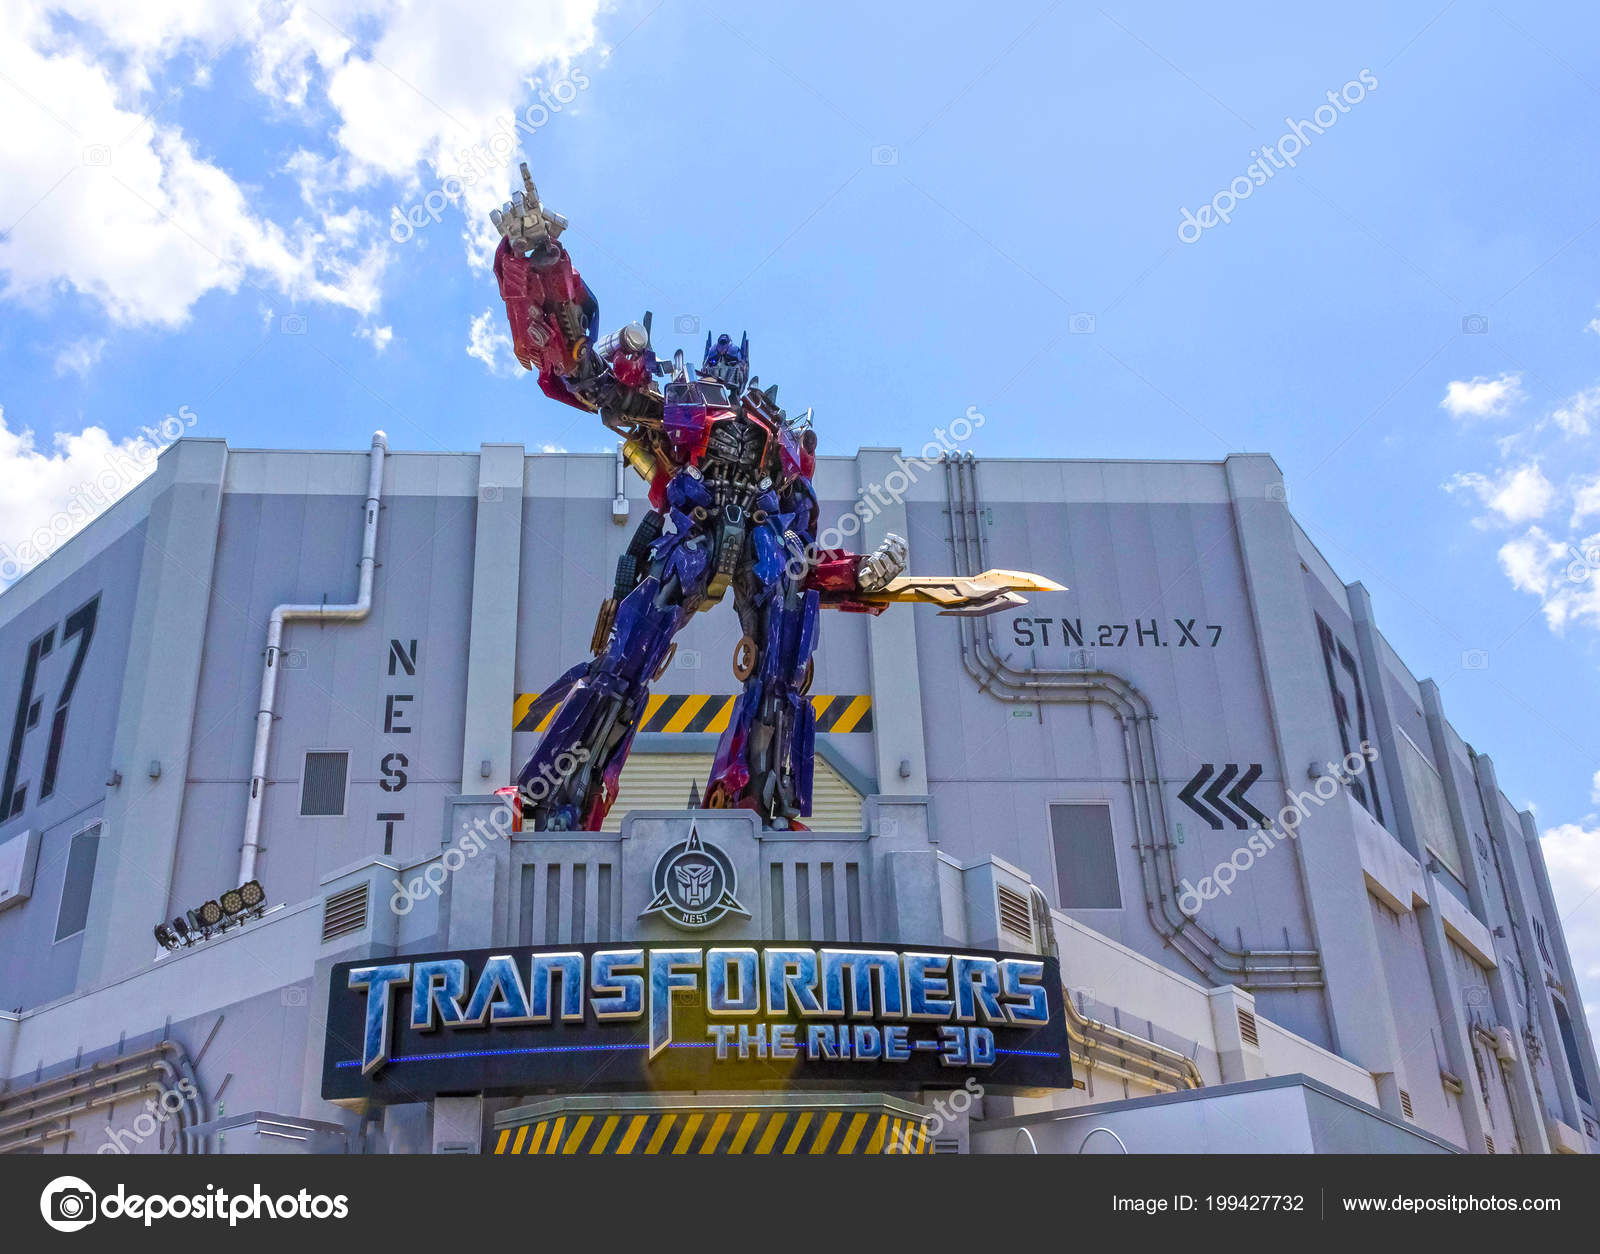 ORLANDO, FLORIDA, USA - MAY 08, 2018: Universal Studios